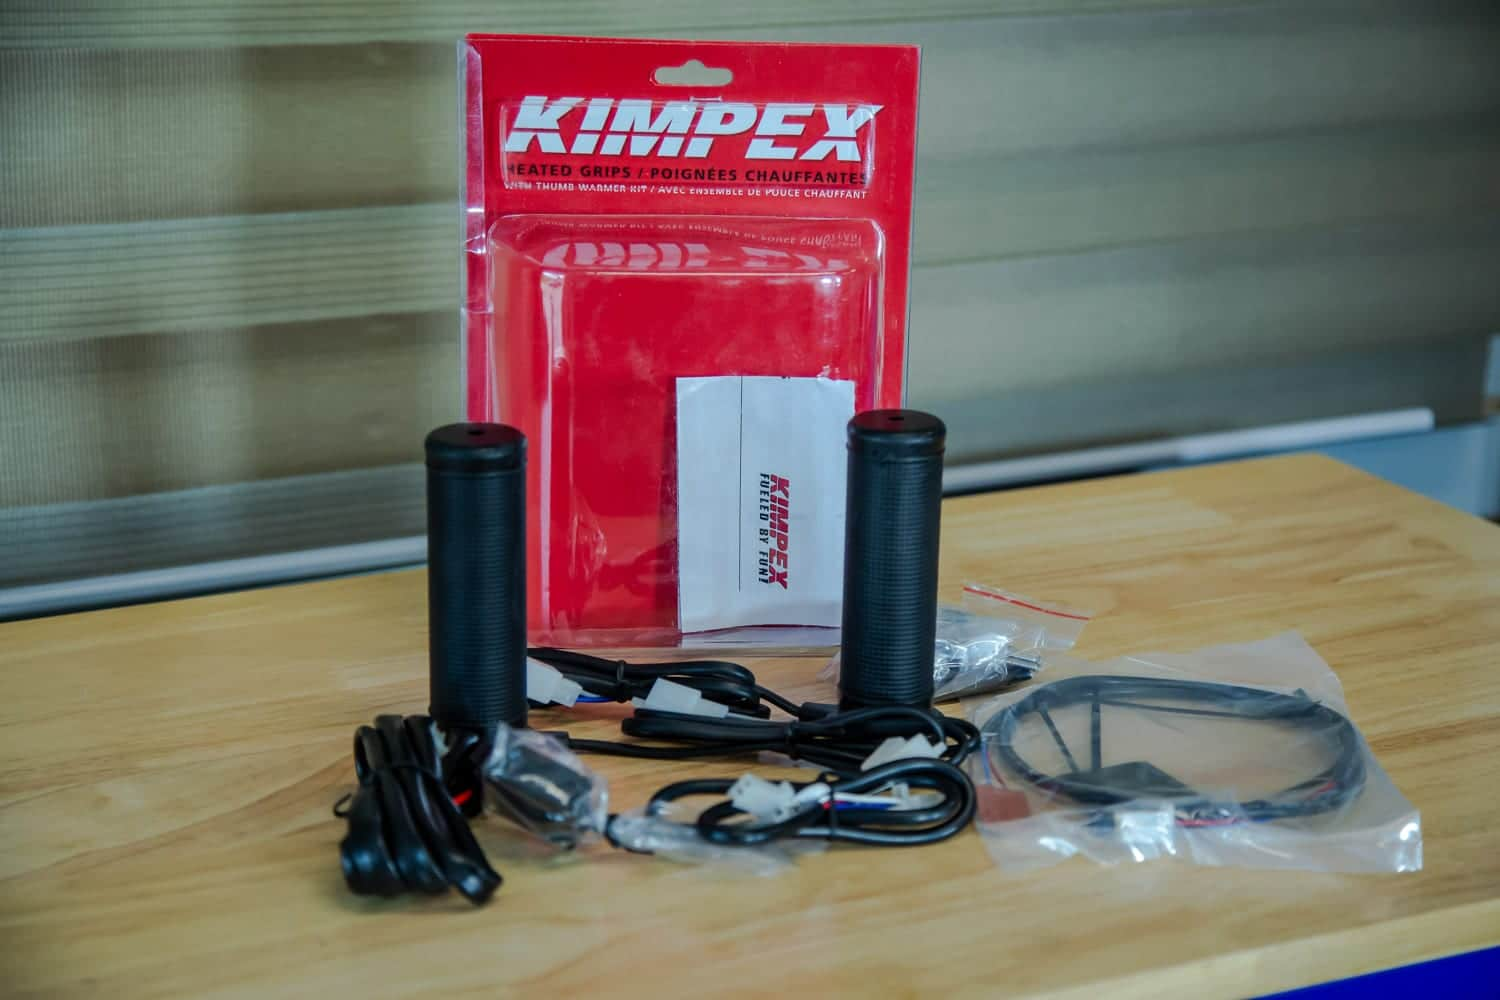 Installation of KIMPEX heated grips and thumbs